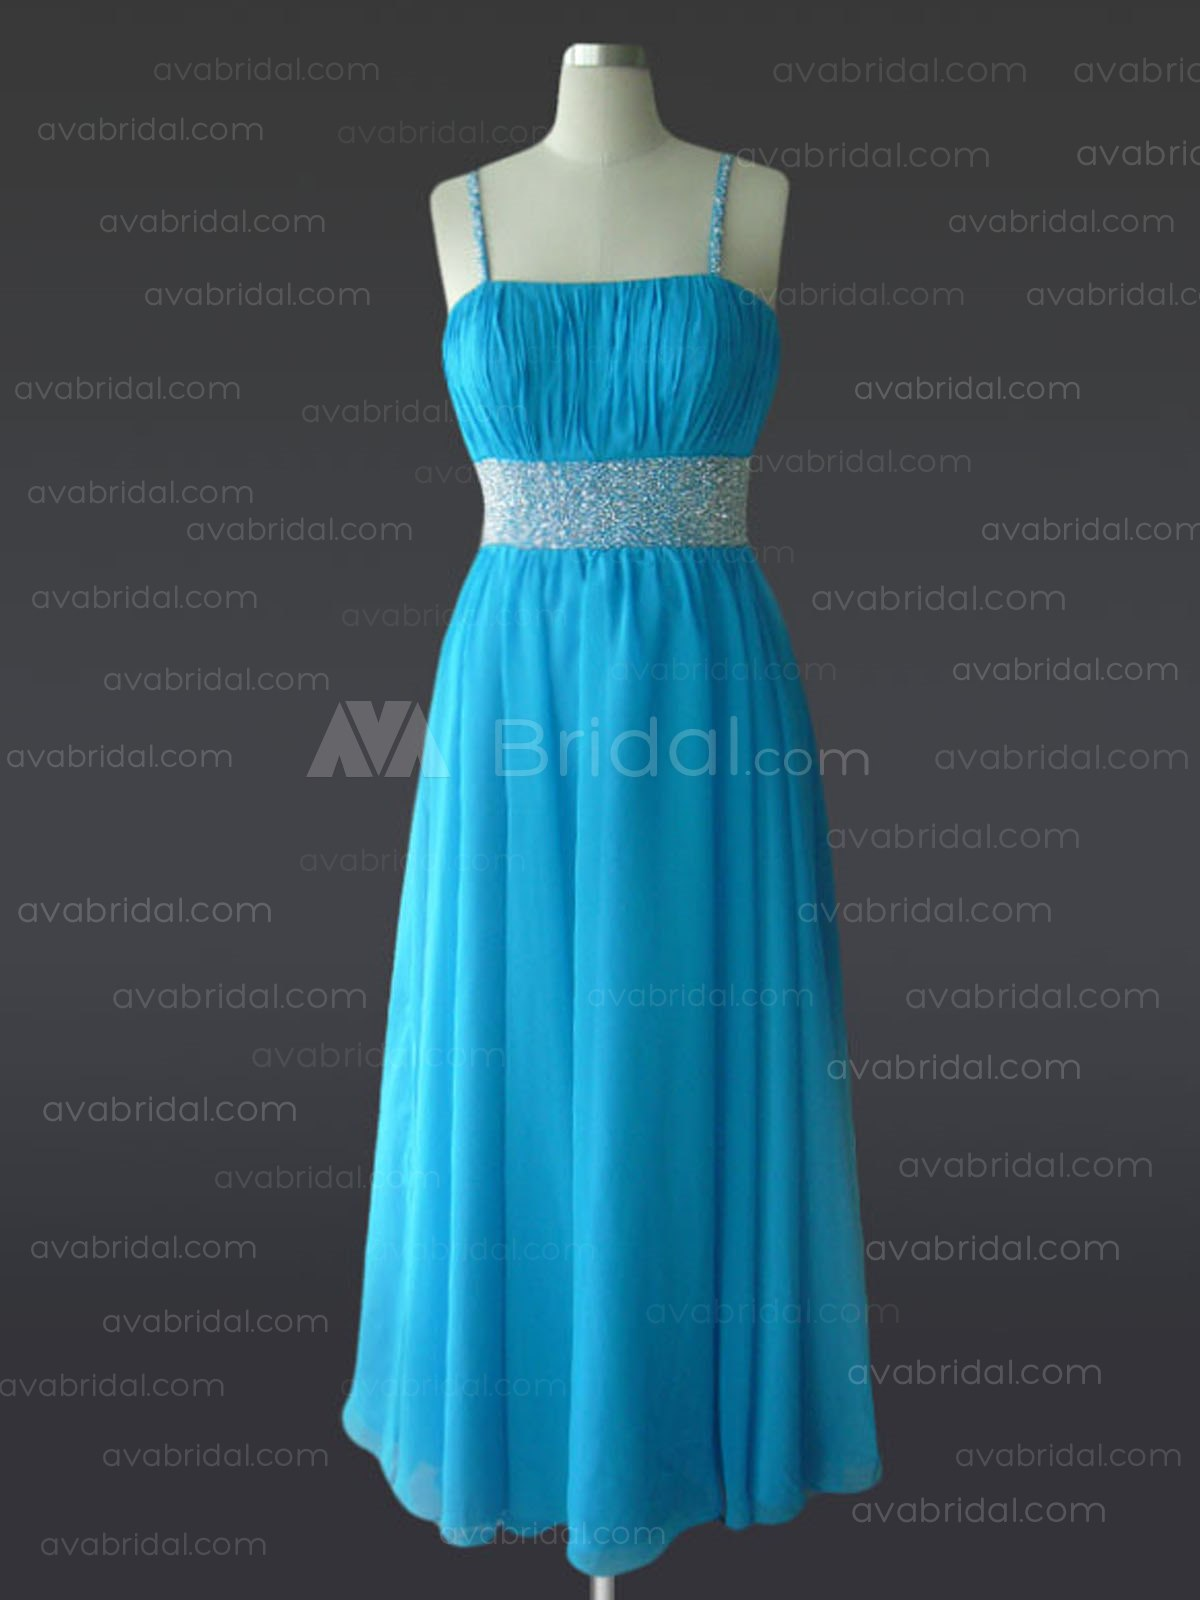 A-line Tea Length Chiffon Bridesmaid Dress B485 - Front